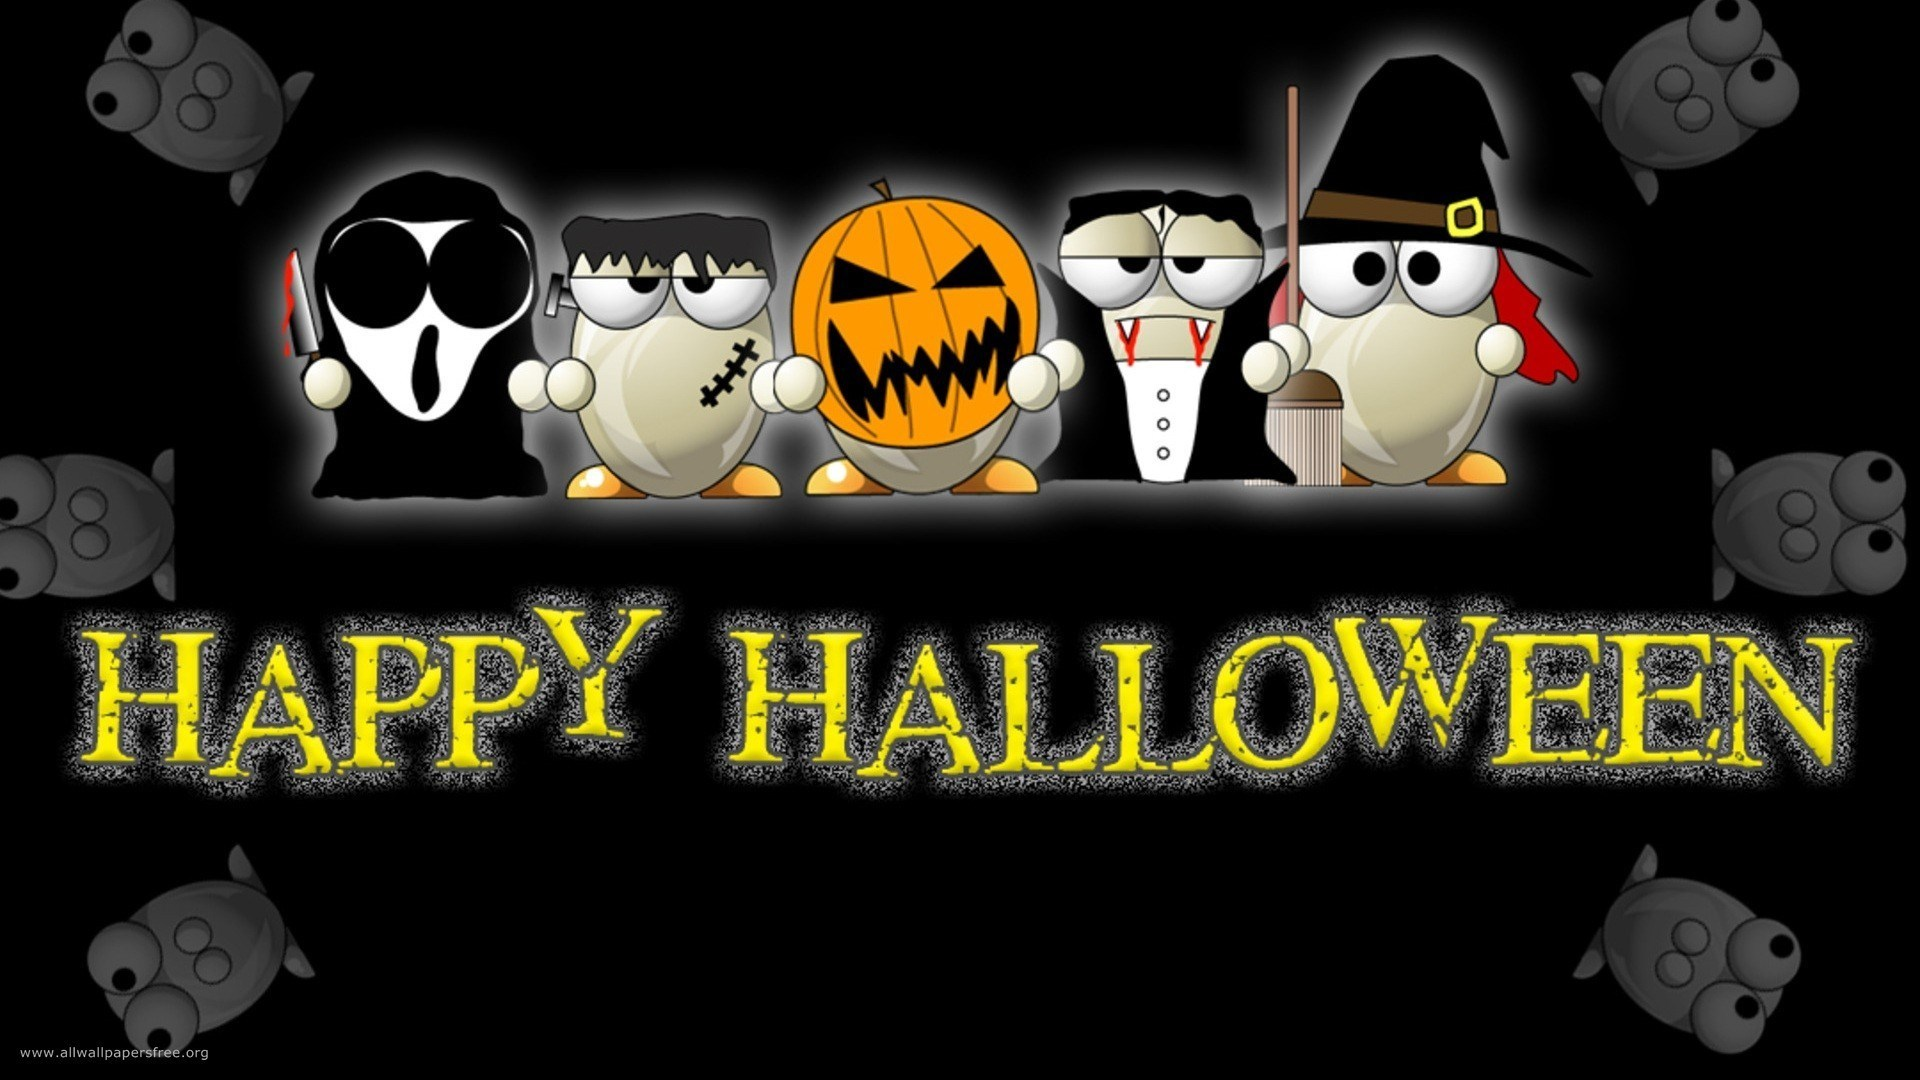 1920x1080-free-halloween-wallpaper-wpc9001065